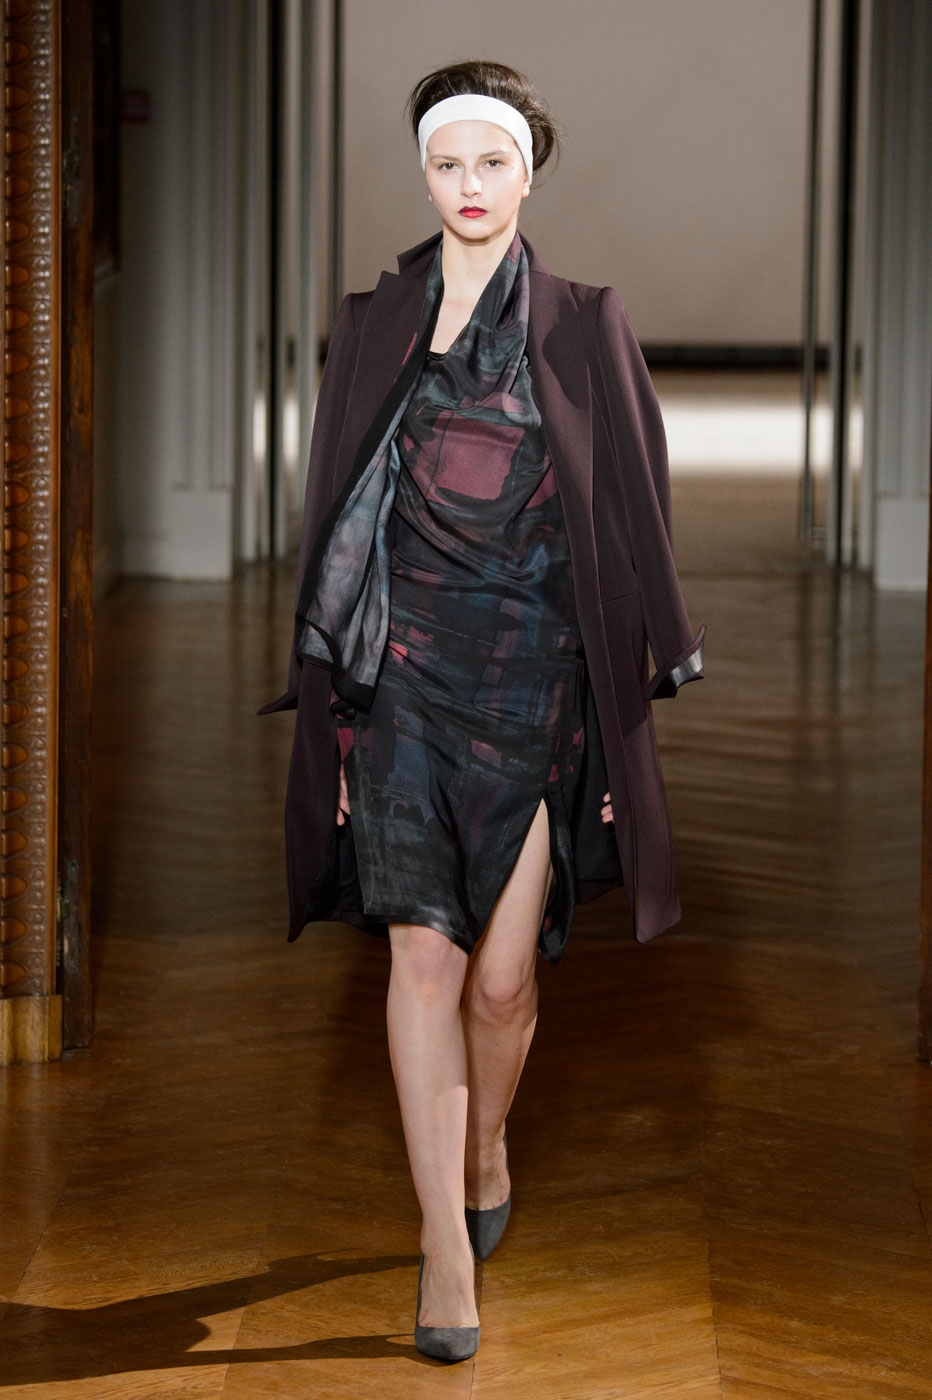 Gustavolins-Prive-fashion-runway-show-haute-couture-paris-spring-2015-the-impression-33